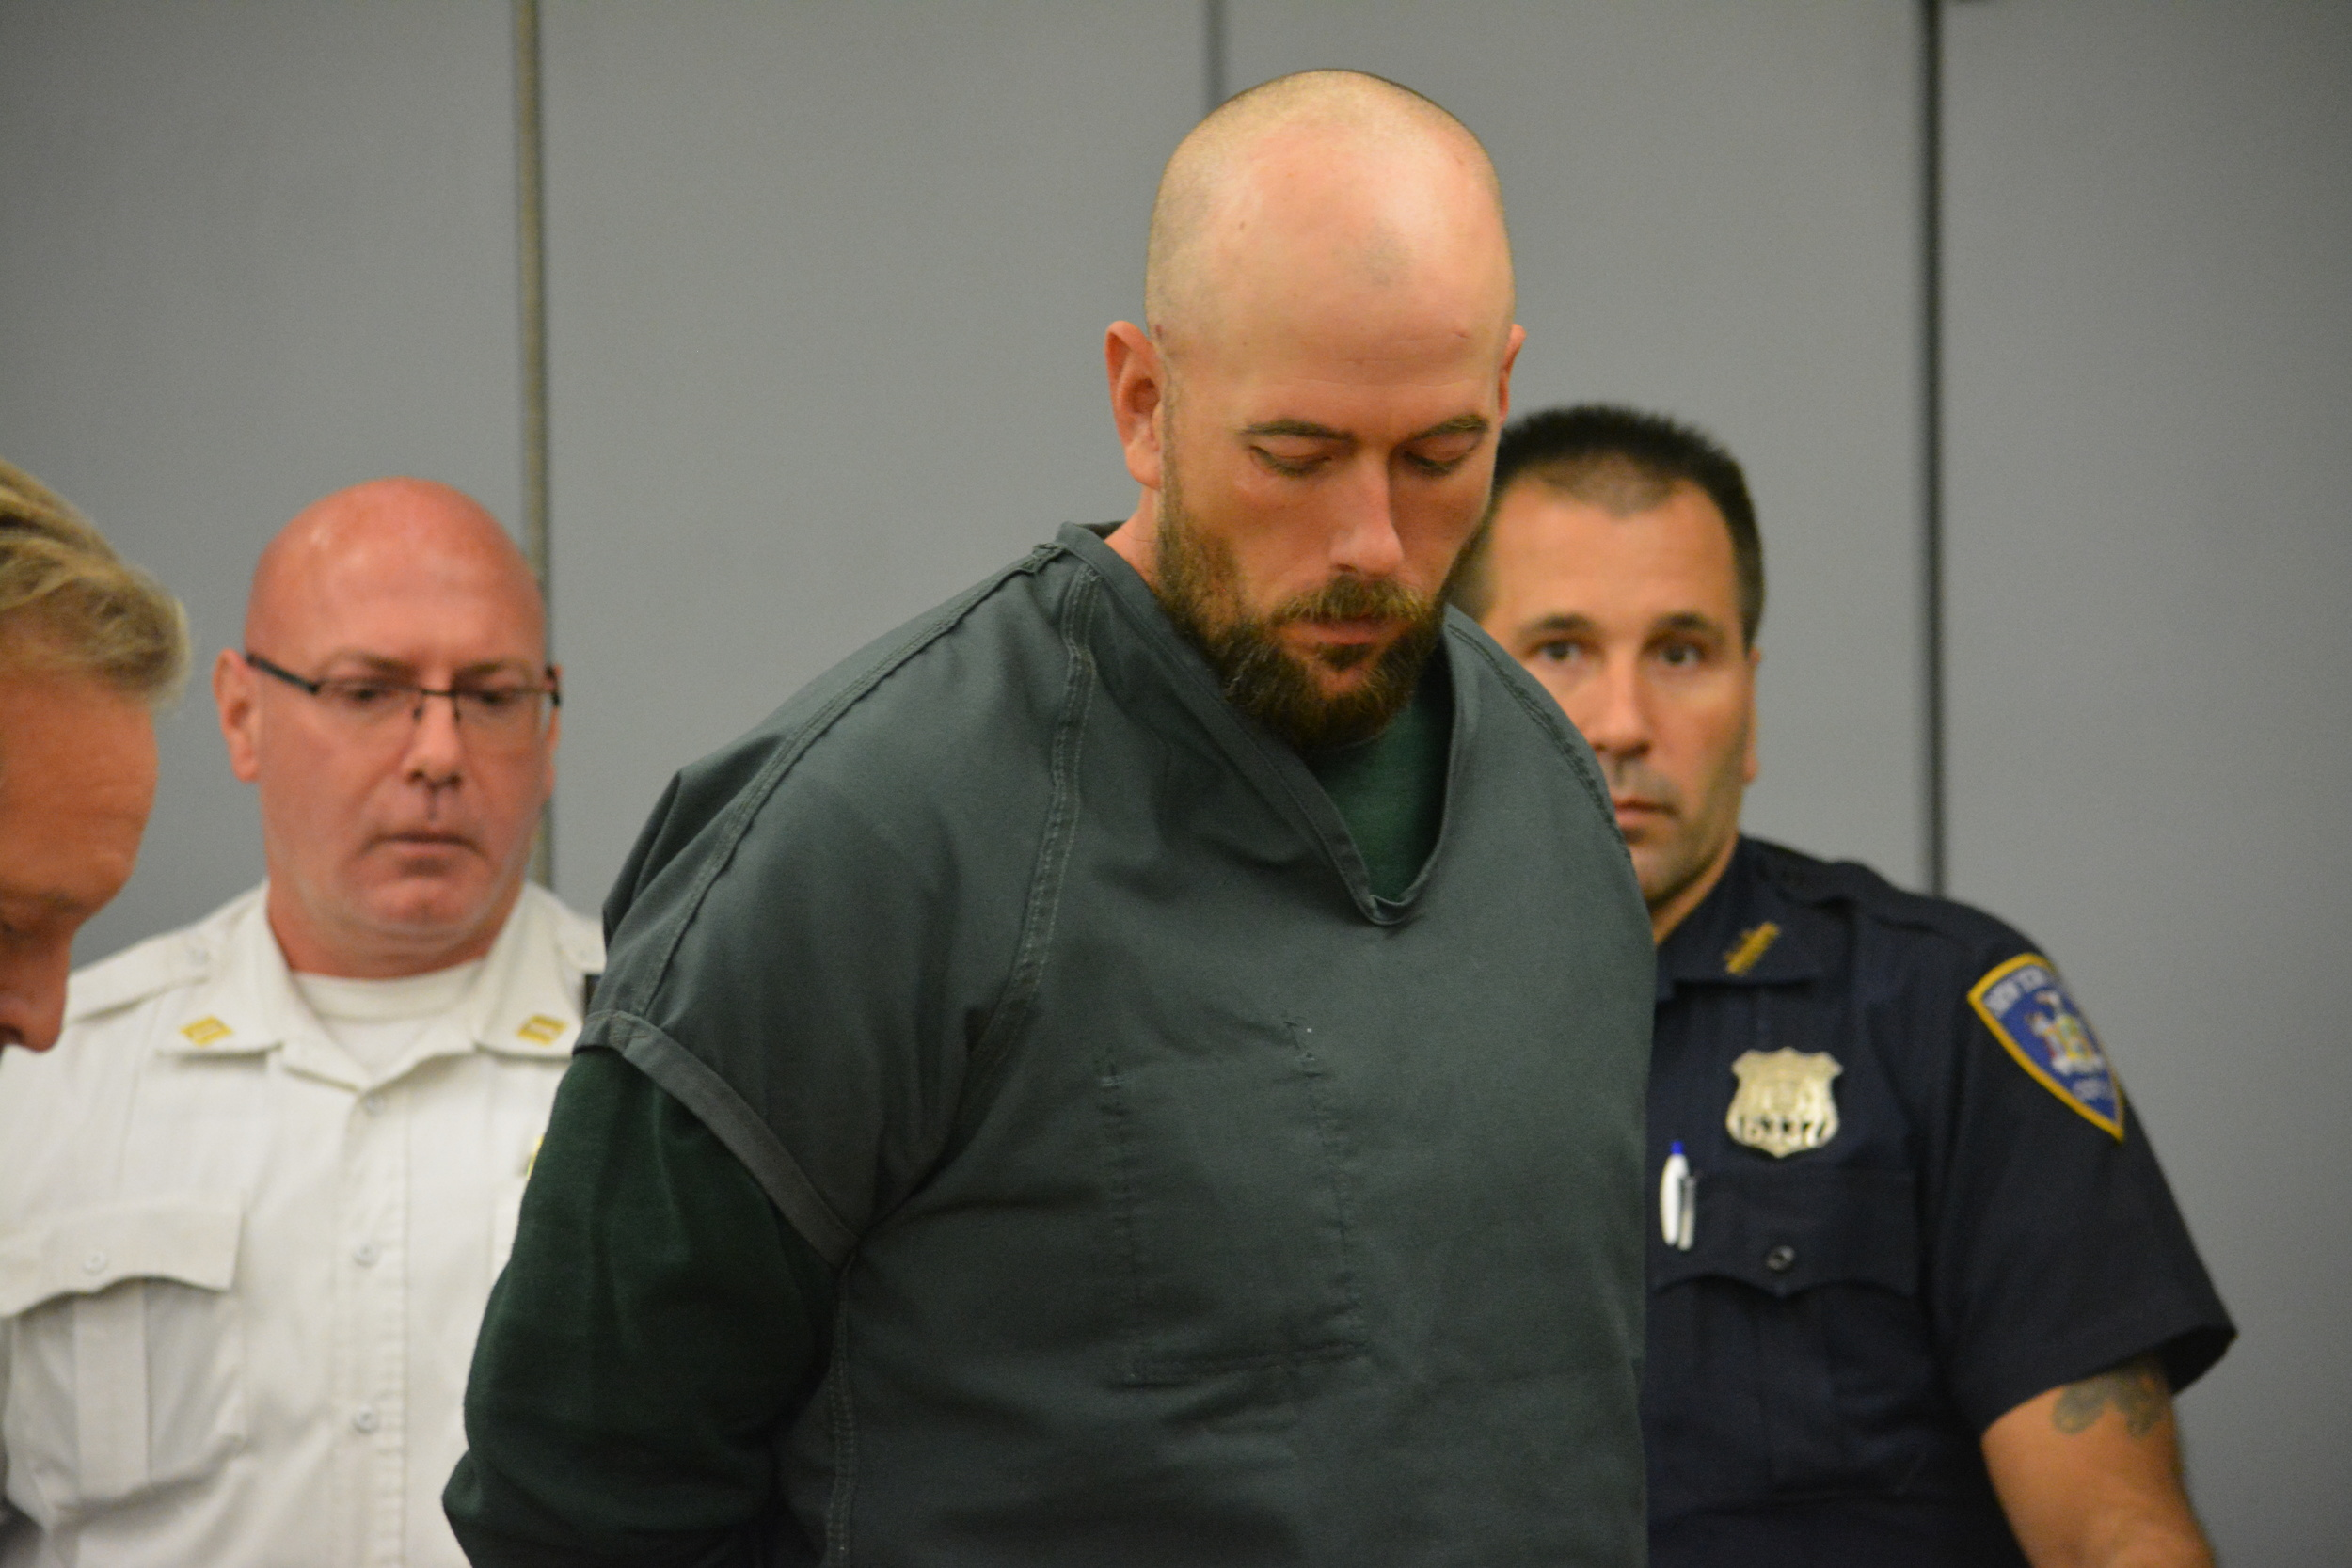 Chad Morizsan of Northport, seconds before his arraignment on Oct. 7.